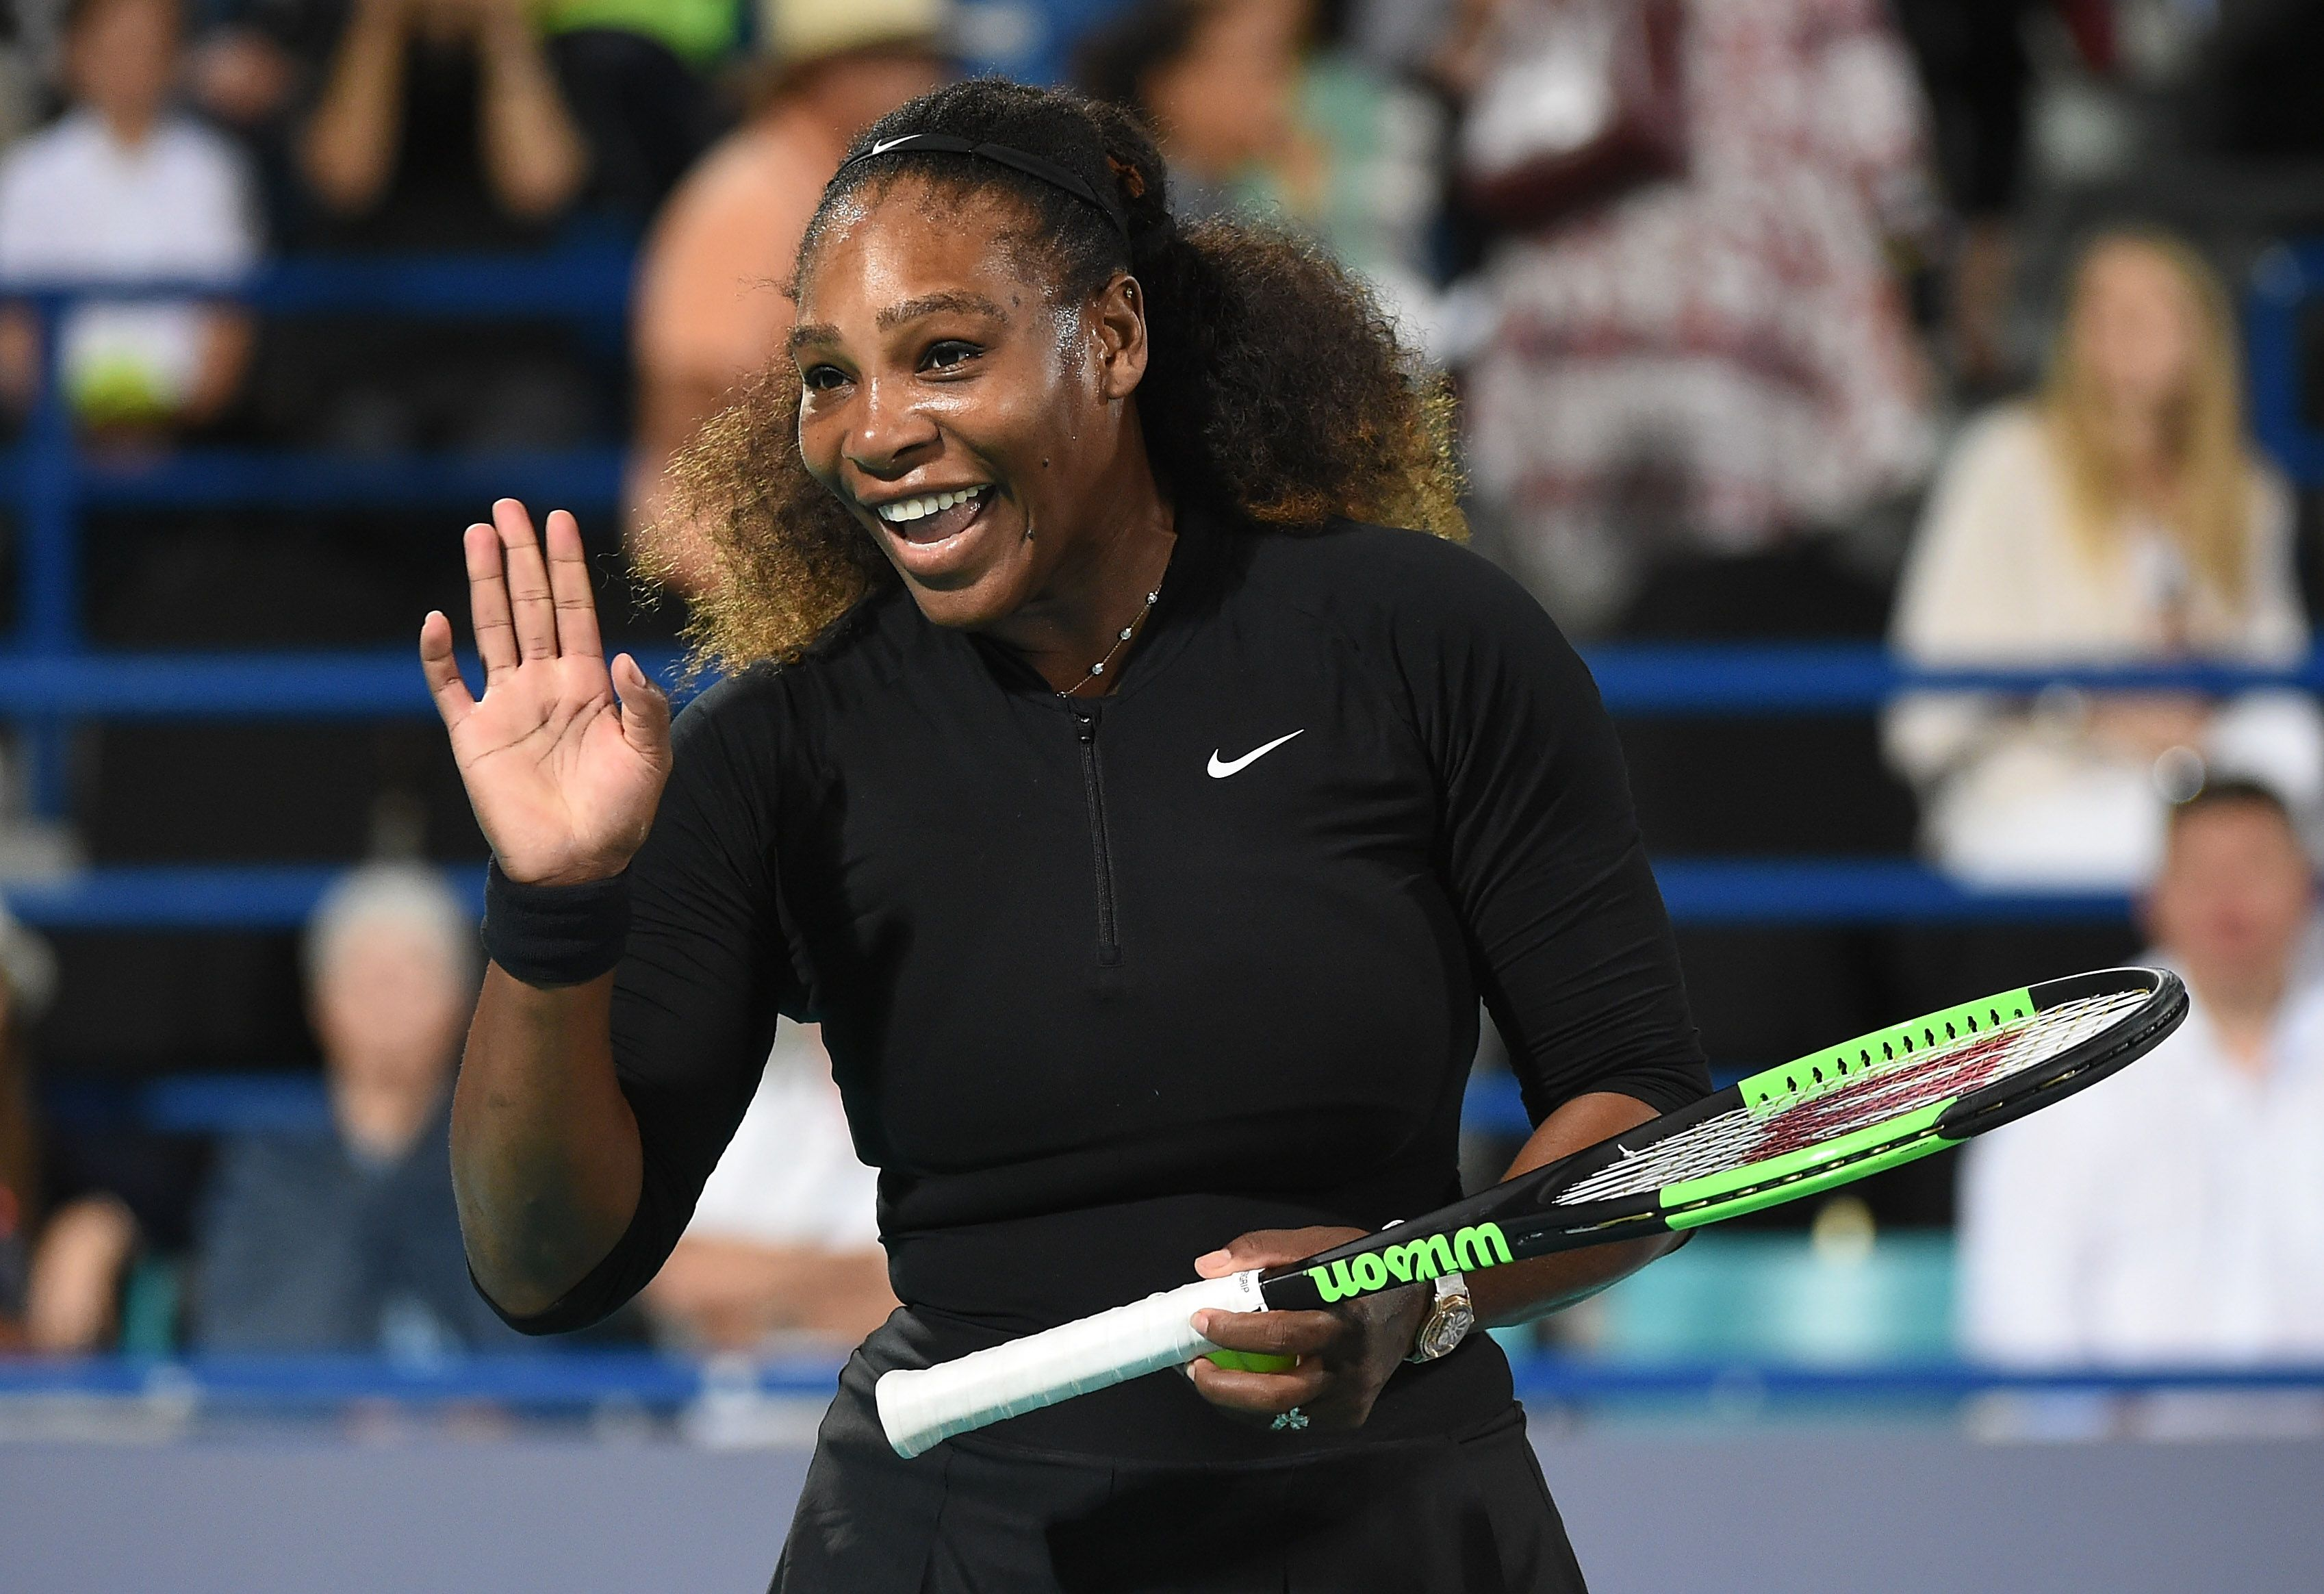 Serena Williams during her match against Jelena Ostapenko in Abu Dhabi/ Source: Getty Images